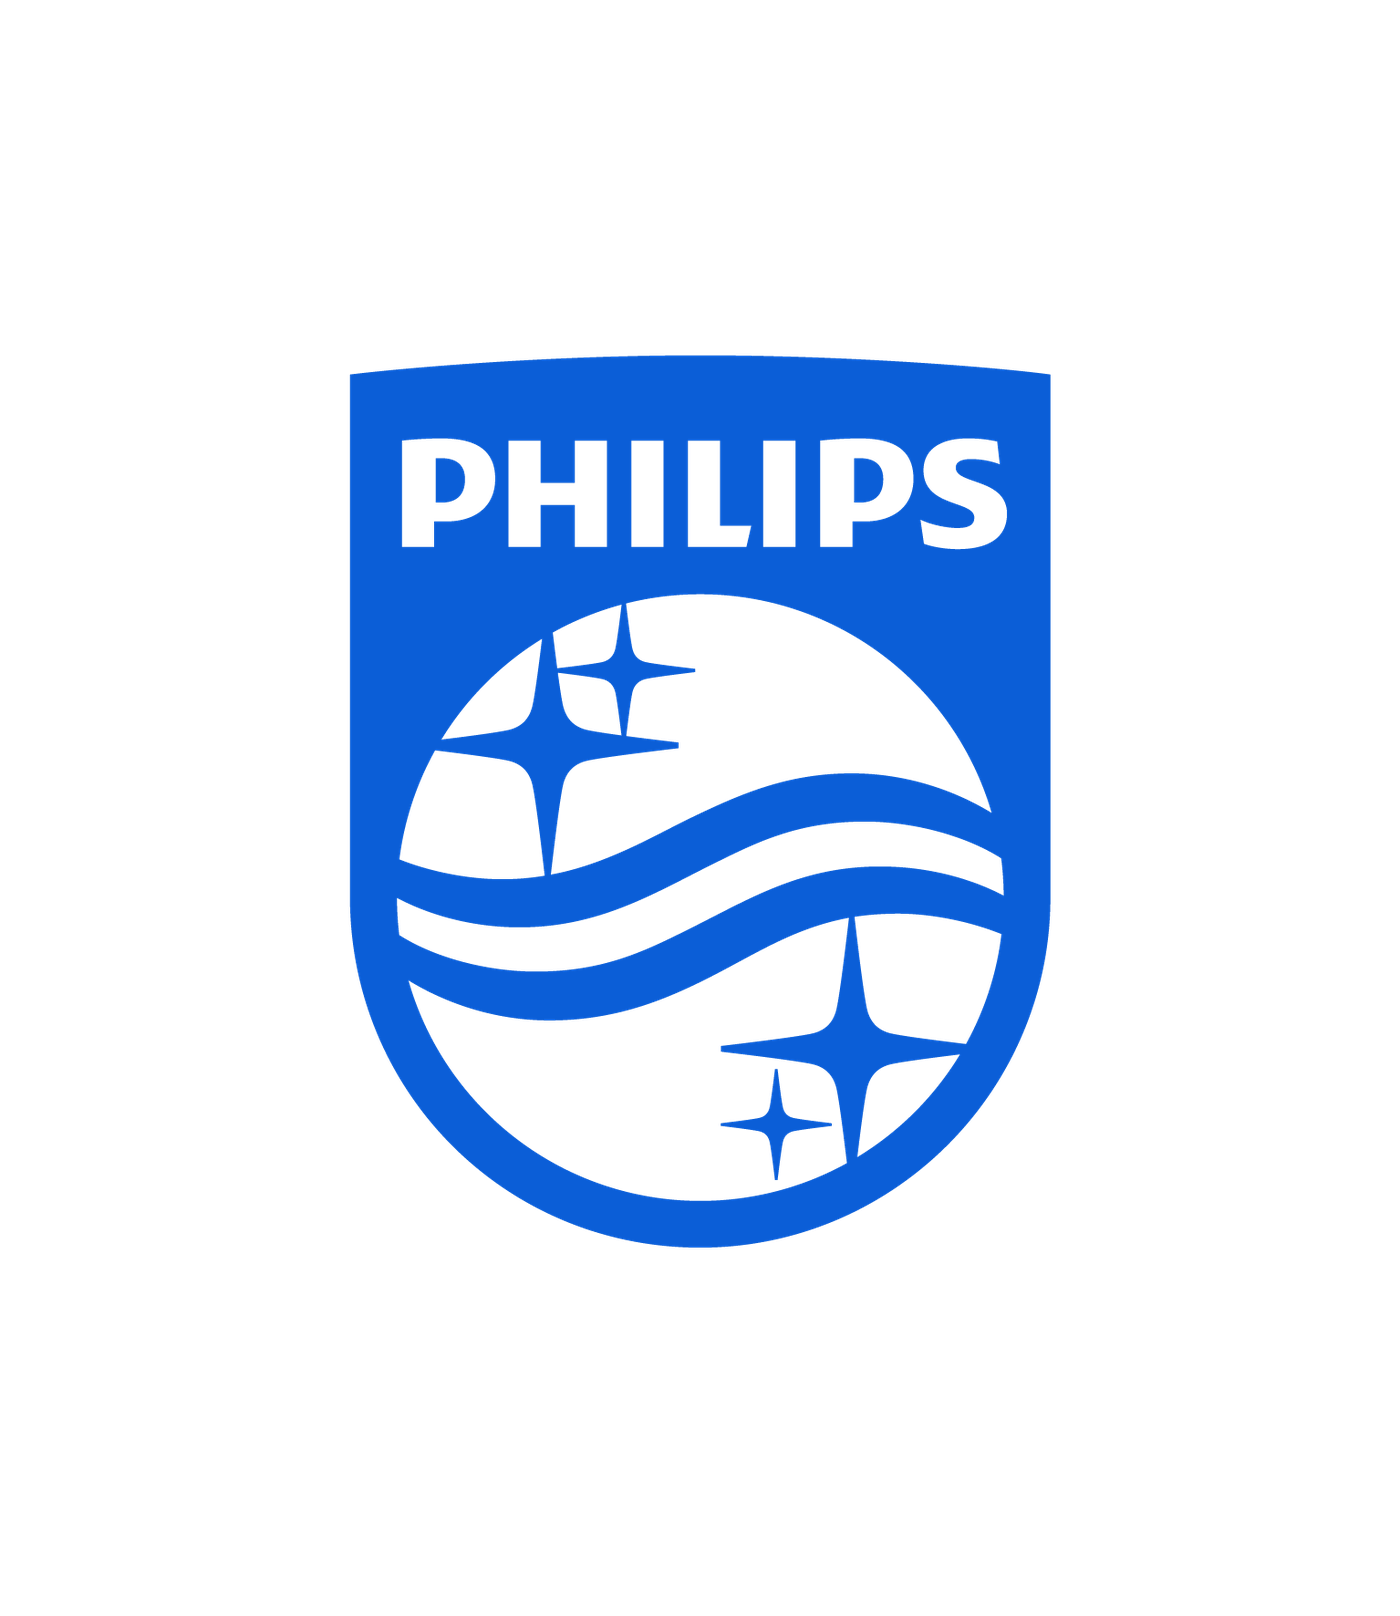 Philips lezing MZK 1 & THK 1